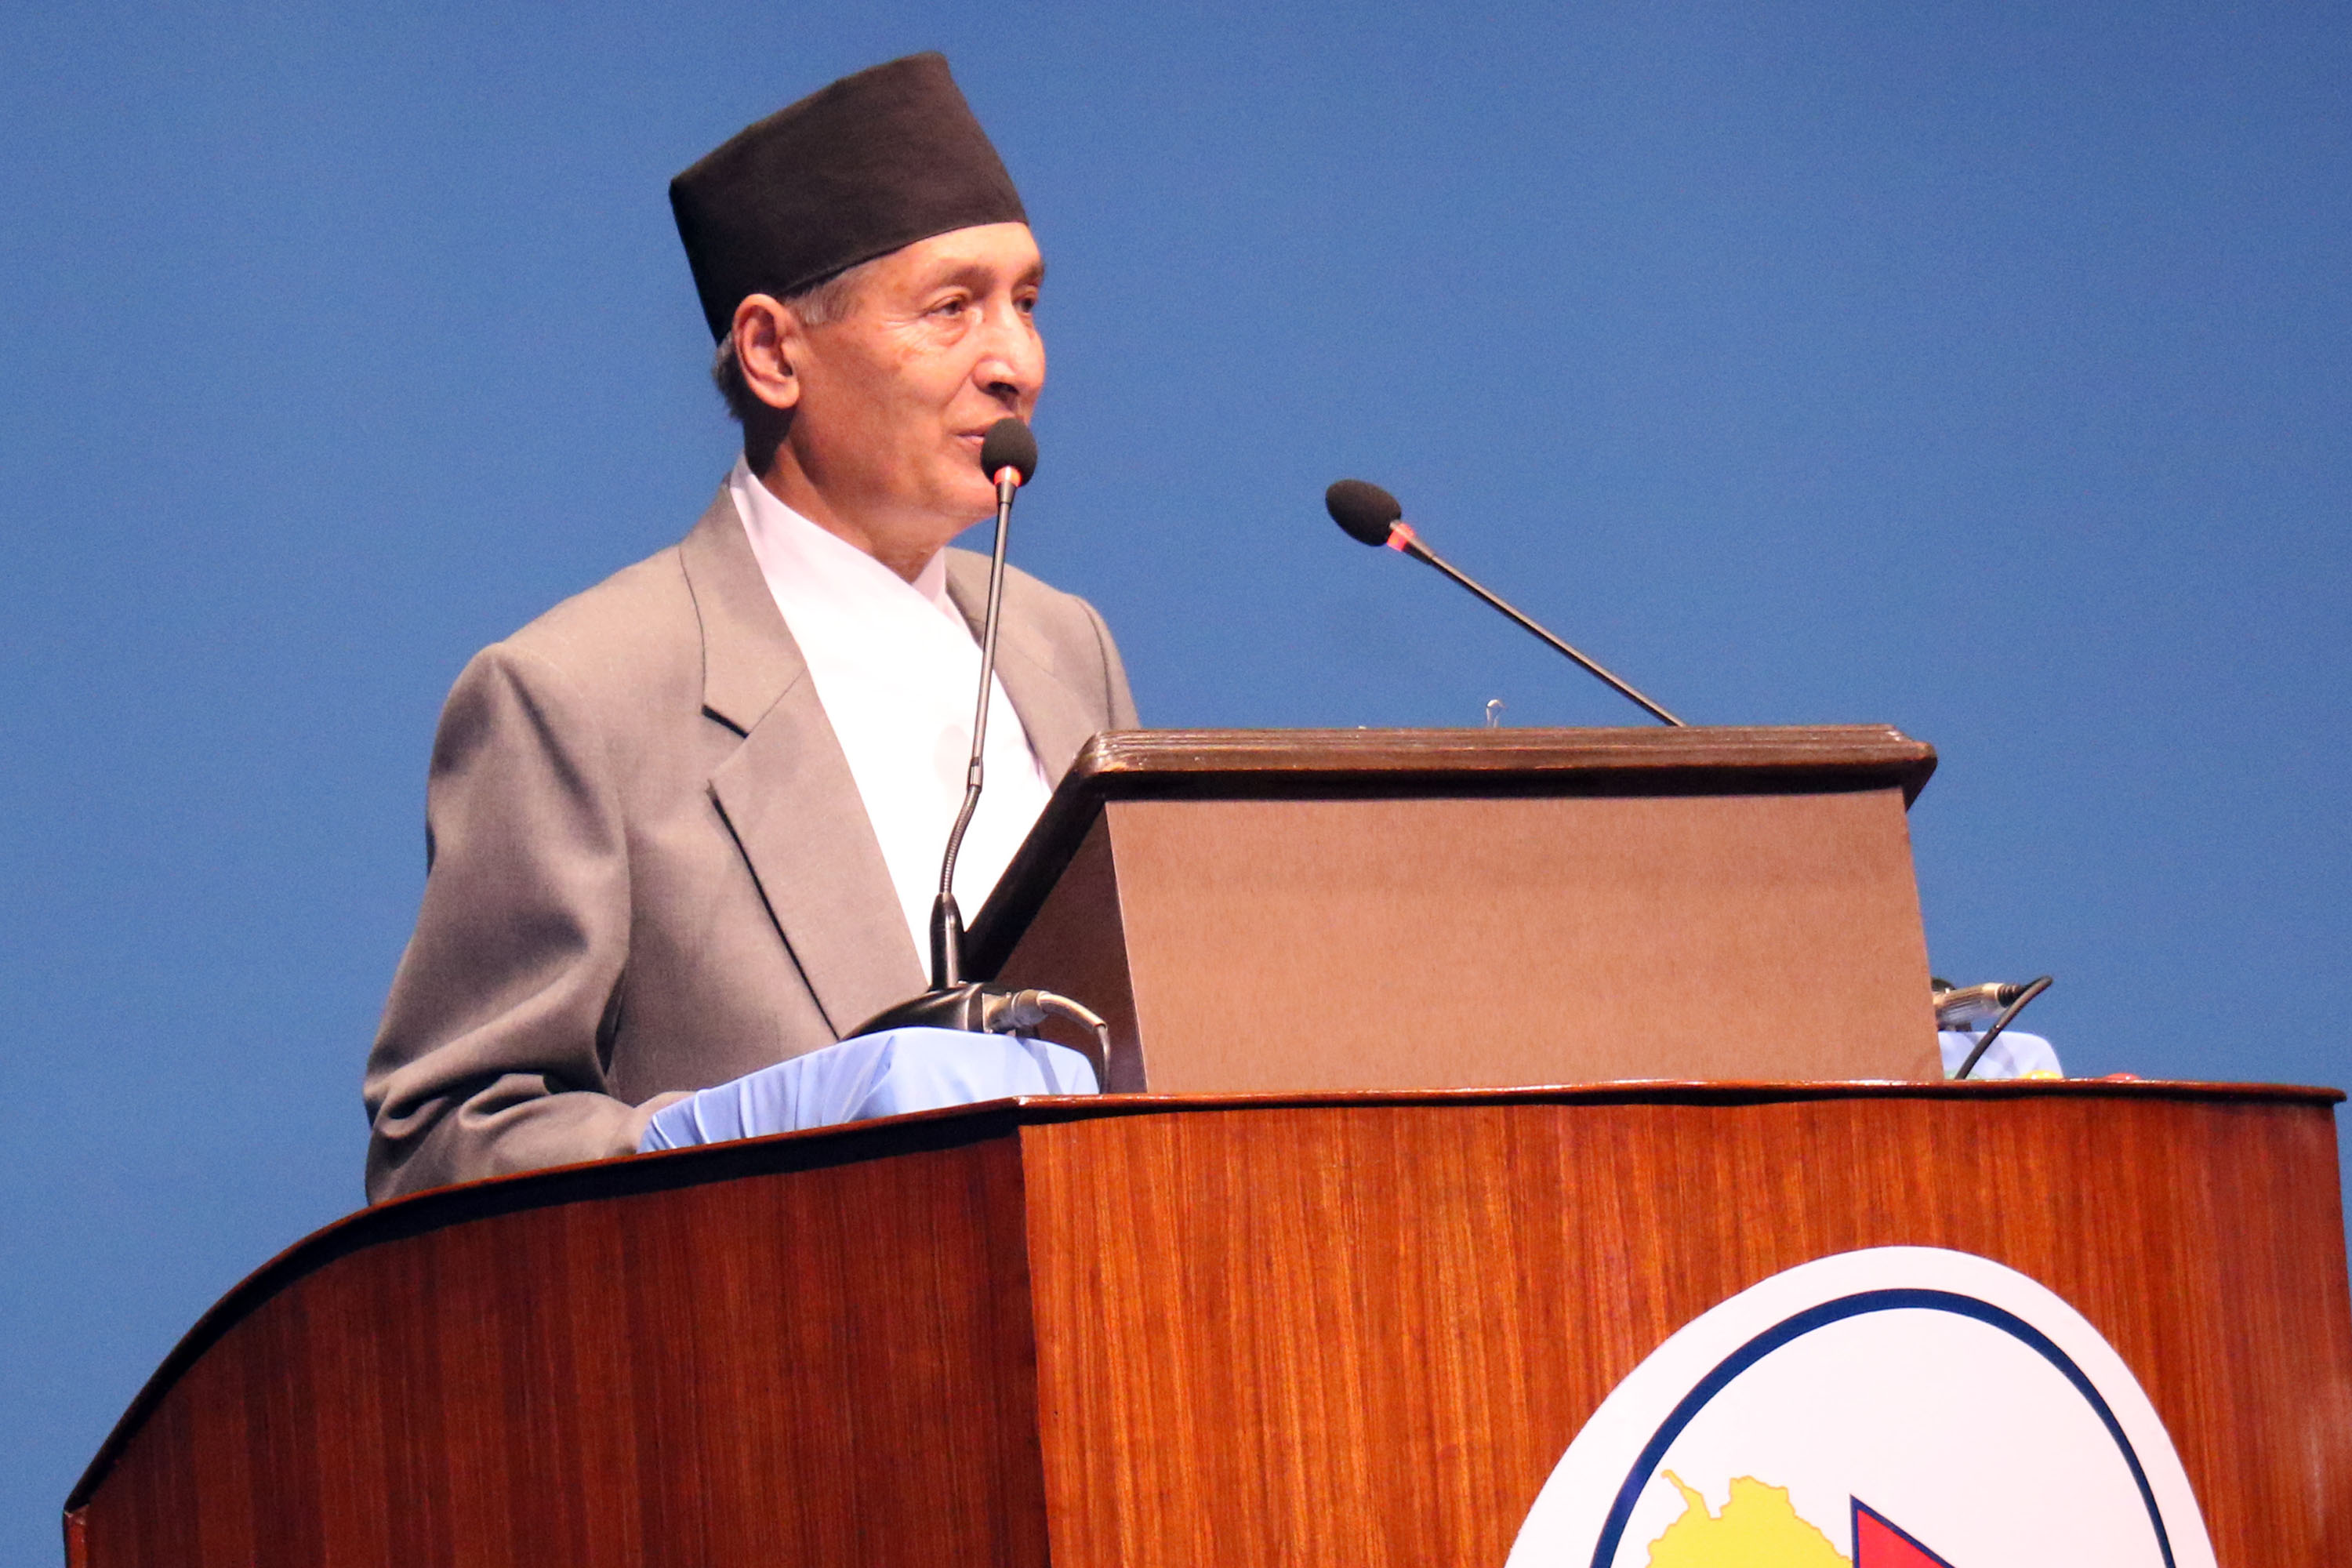 Finance Minister Yubaraj Khatiwada presents a budget of Rs 1,474.64 billion for the Fiscal Year 2020/2021 in the joint session of the House of Representatives and National Assembly, in Kathmandu, on Thursday, May 28, 2020. Photo: RSS